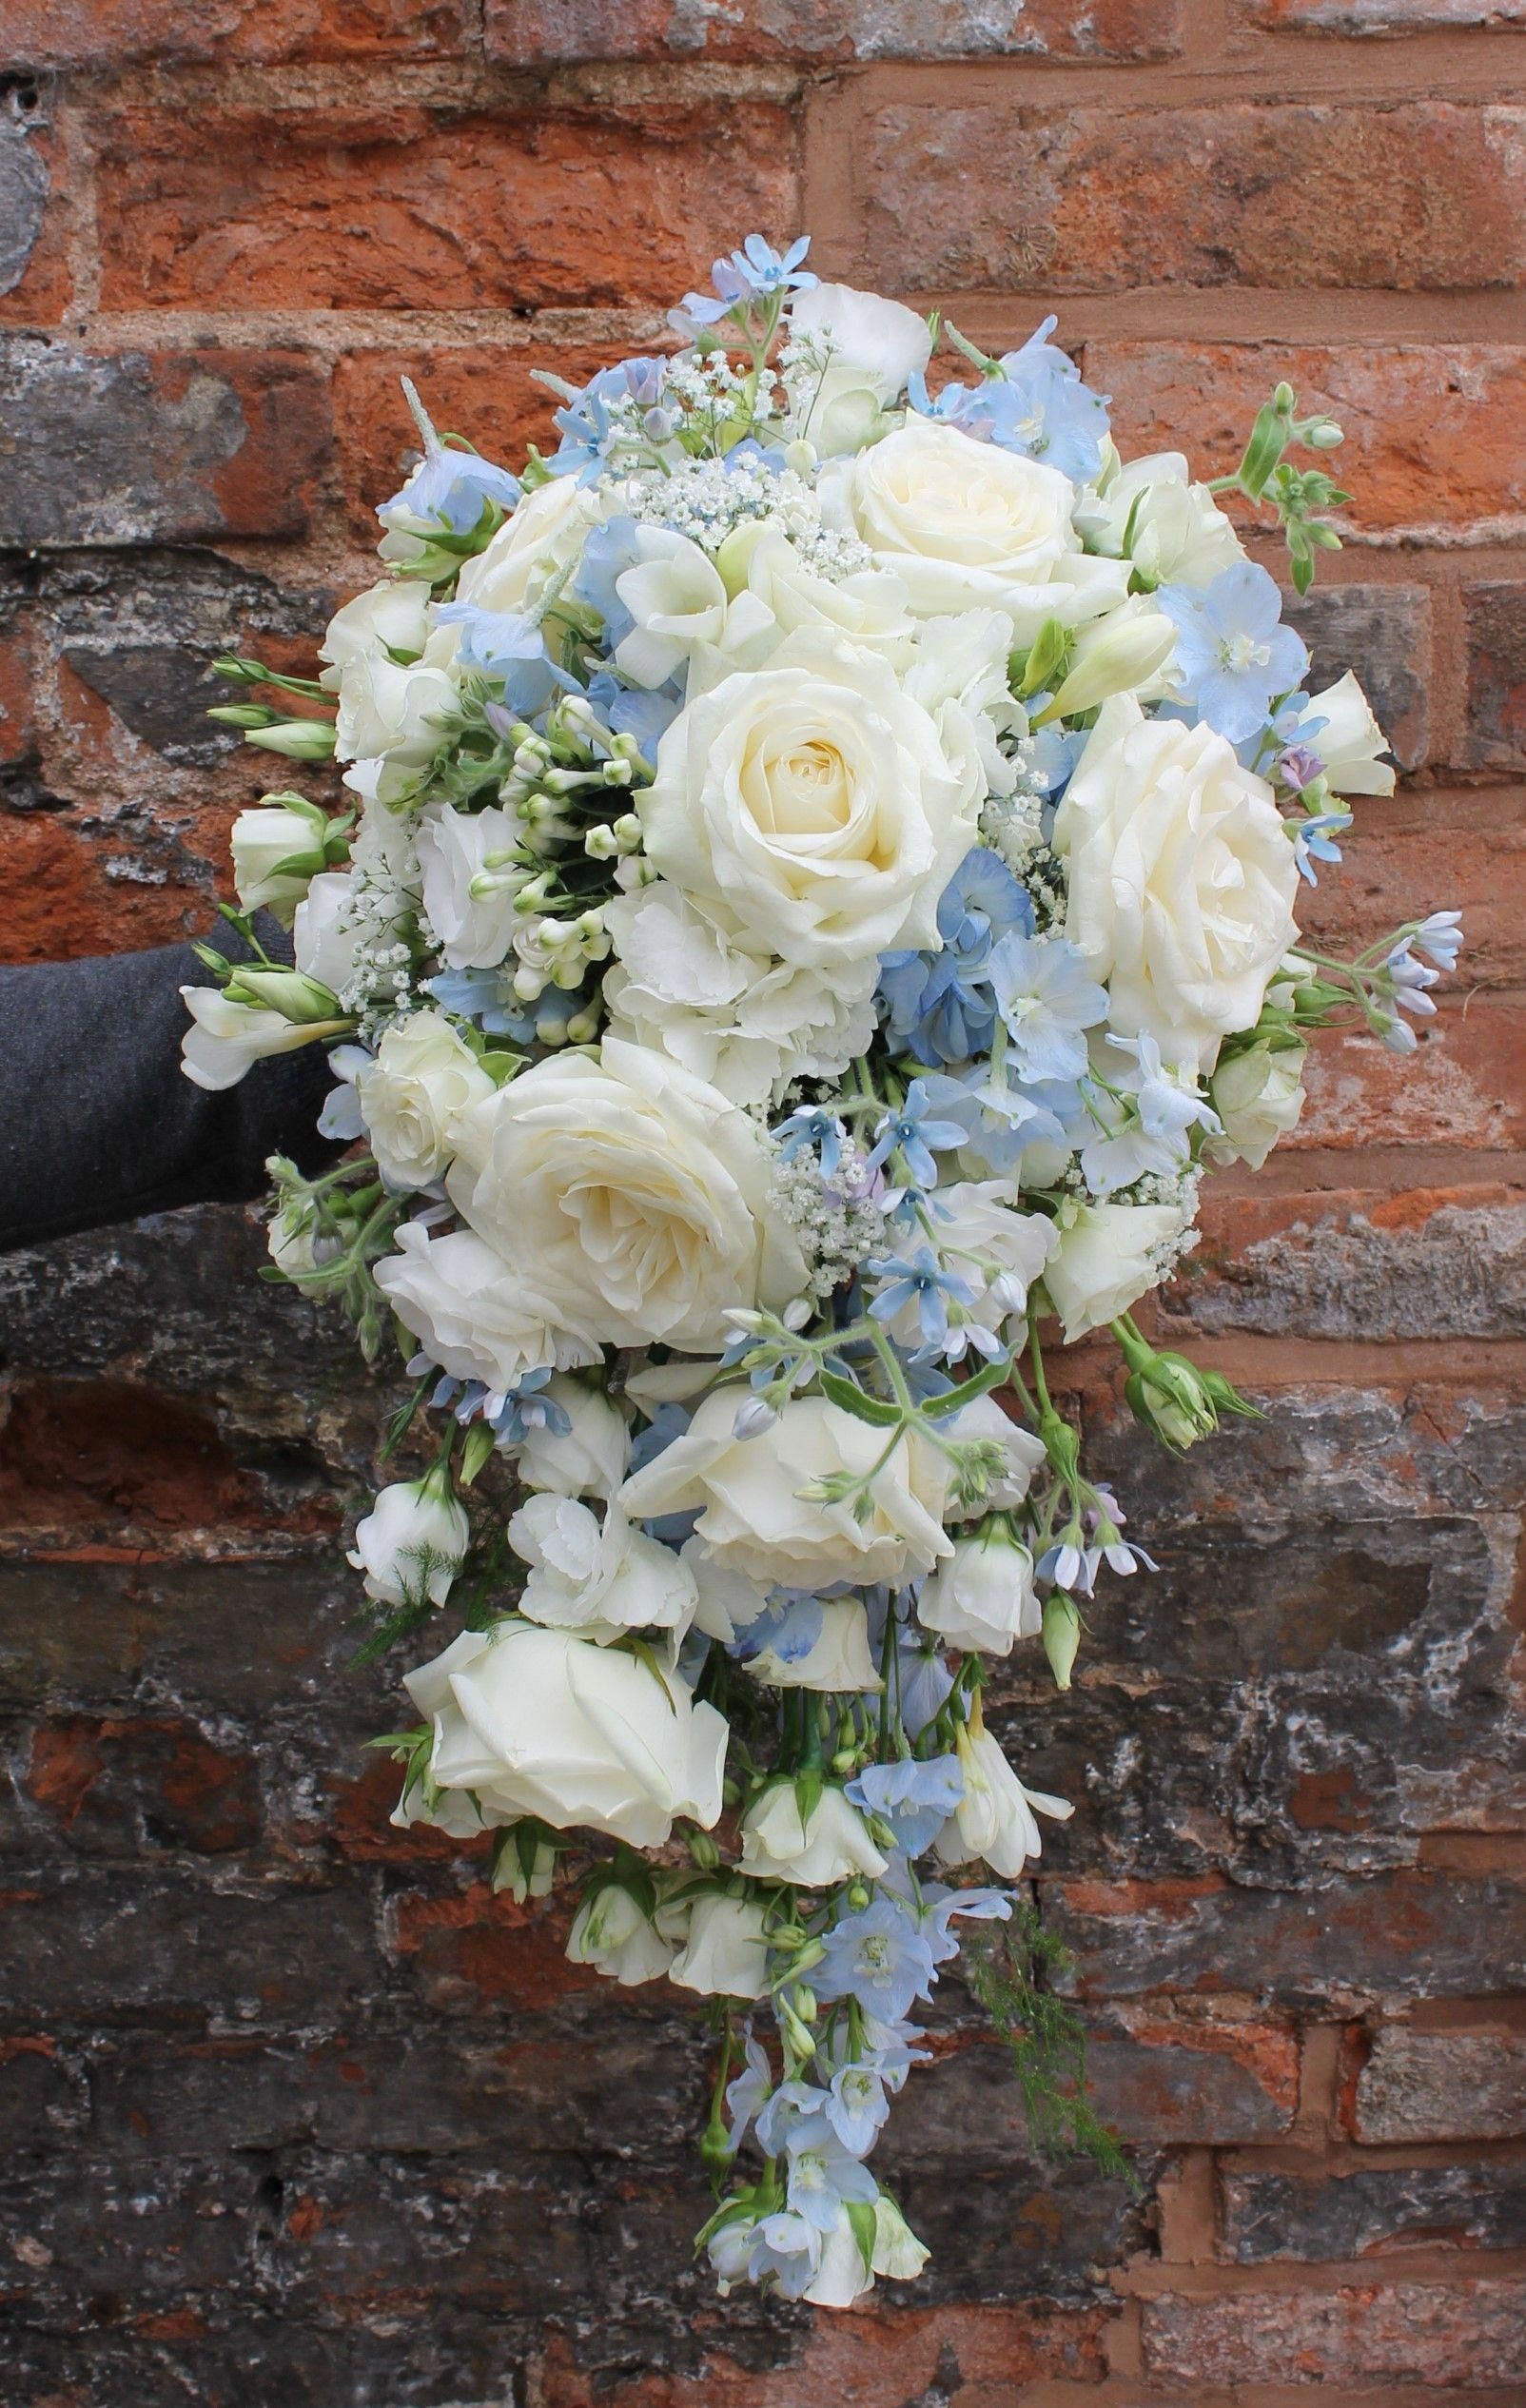 cascading bridal bouquet in pale blue and ivory flowers - avalanche roses - blue delphinium - blue hydrangea - oxypetalum - lisianthus - and freesia #whitebridalbouquets